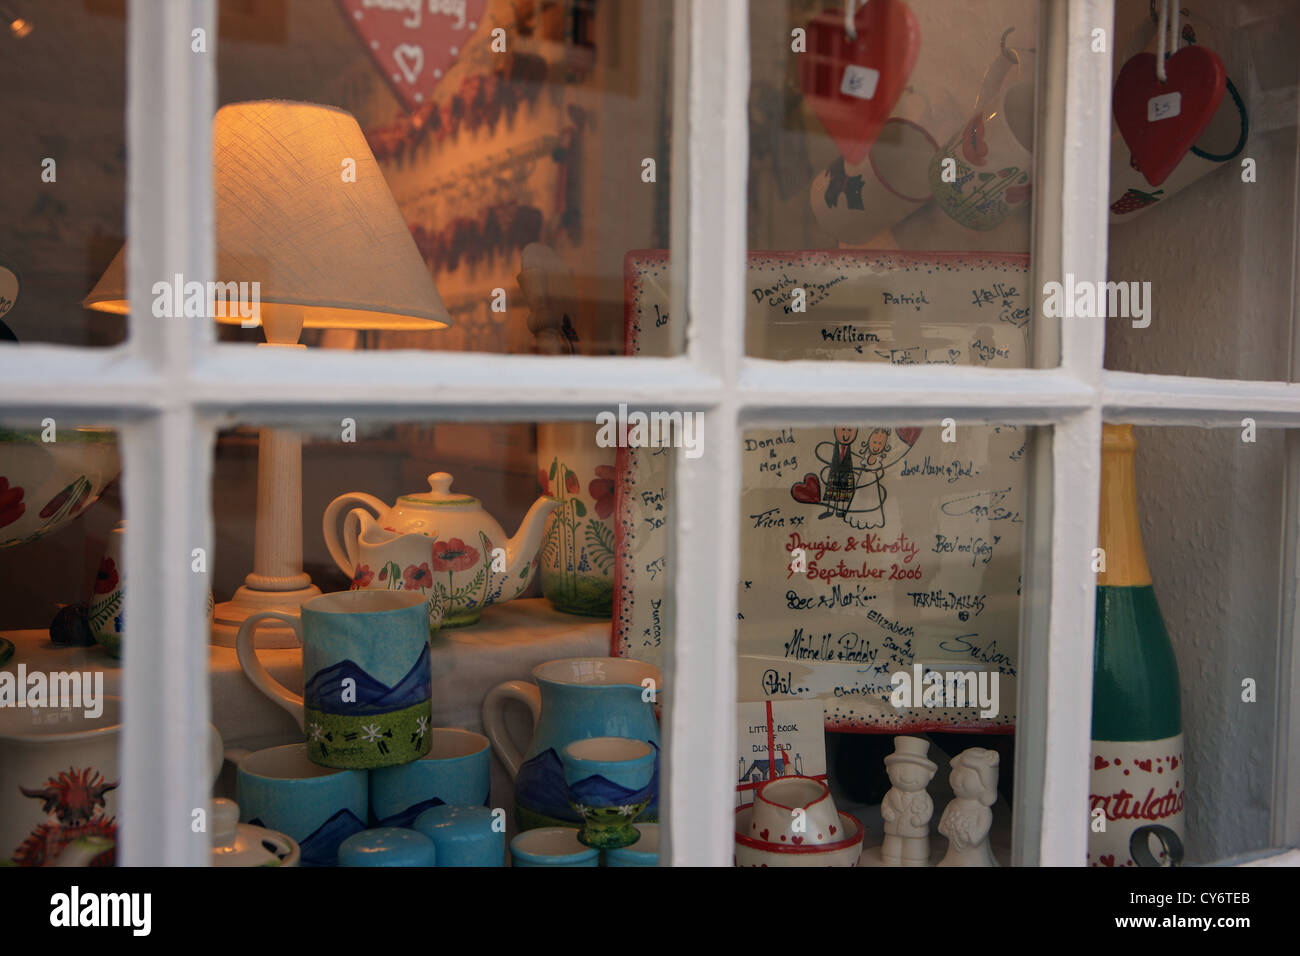 Shop window selling tourist gifts and nik naks in the Perthshire town of Dunkeld - Stock Image